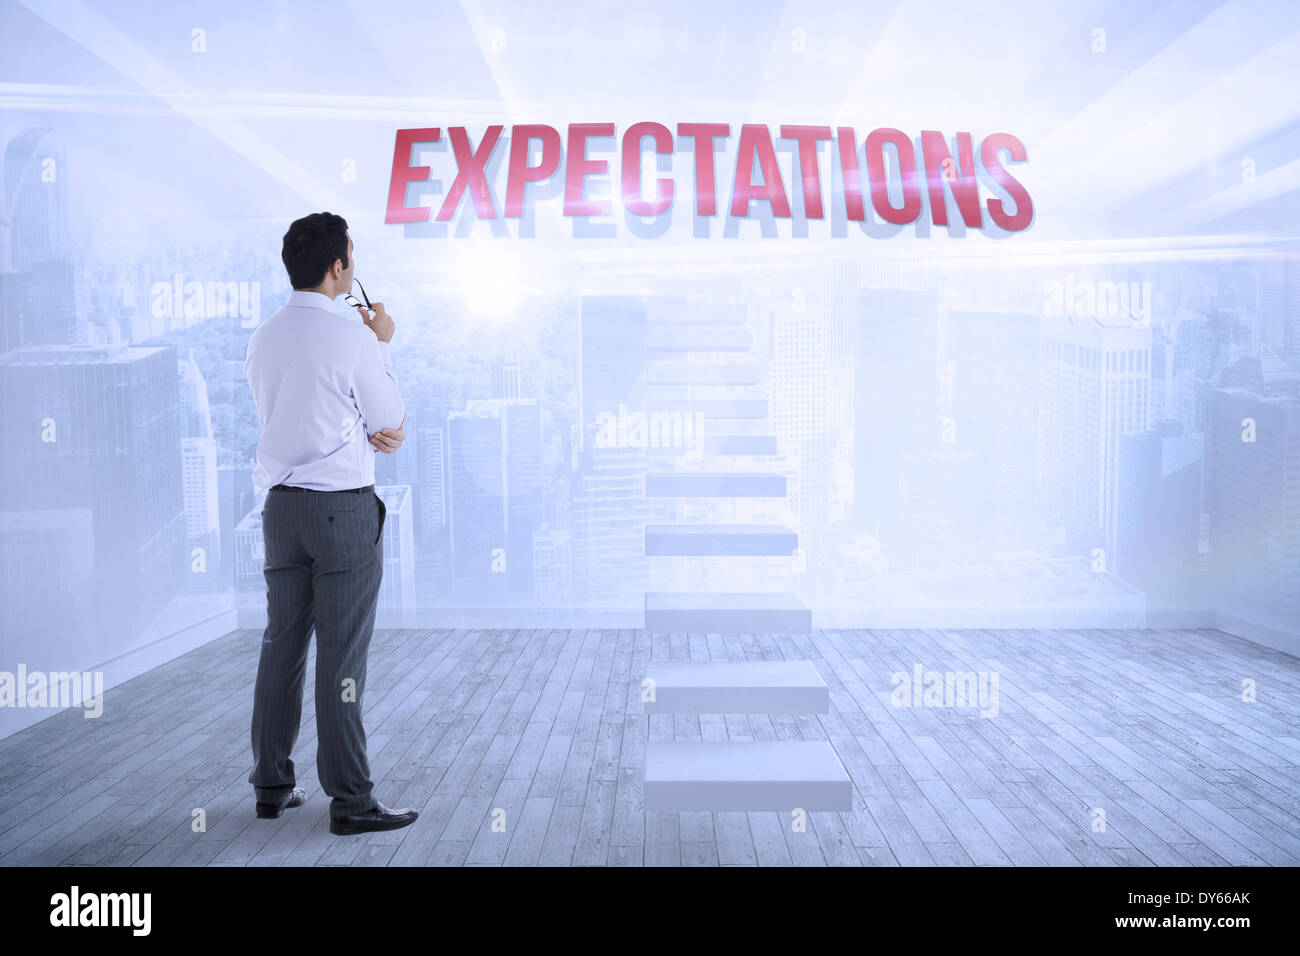 Expectations against city scene in a room - Stock Image